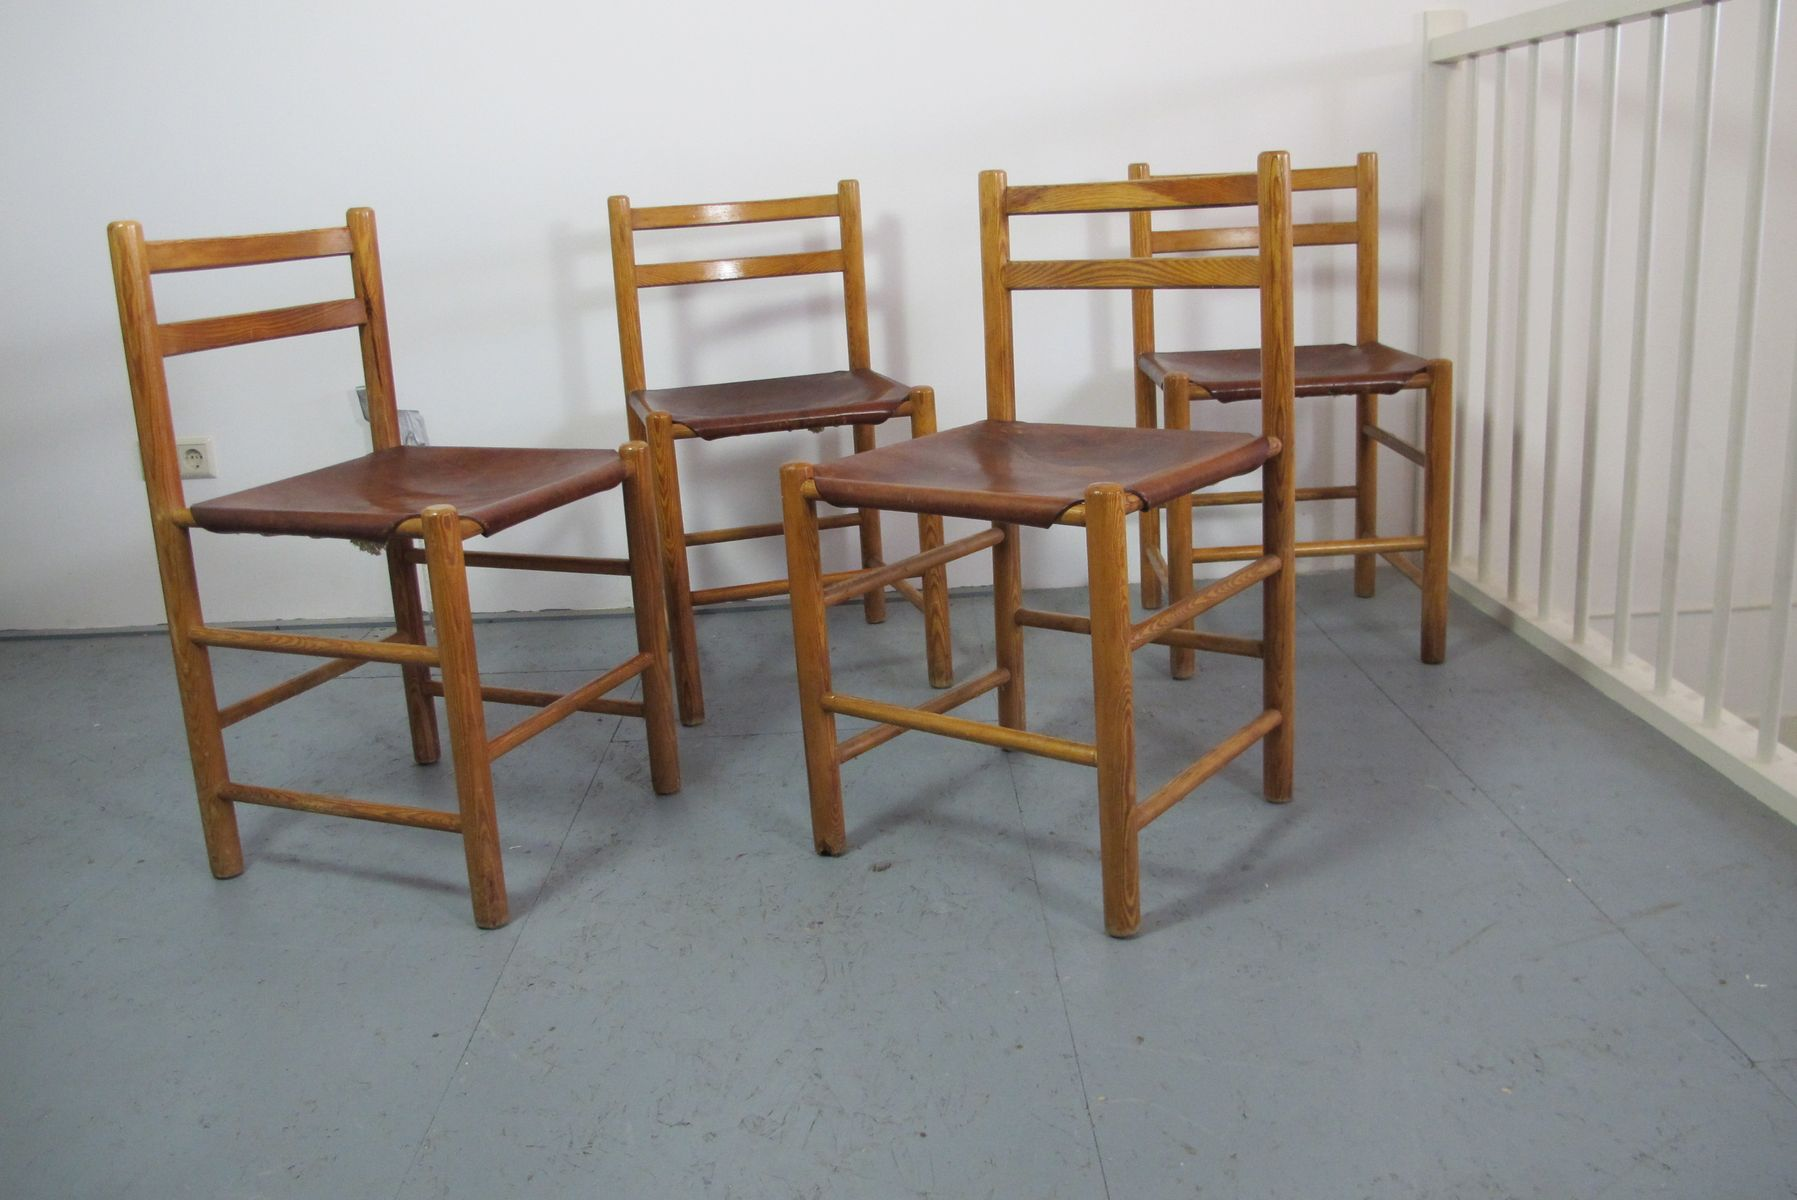 Vintage dutch design dining chairs by ate van apeldoorn for Dutch design chair uk